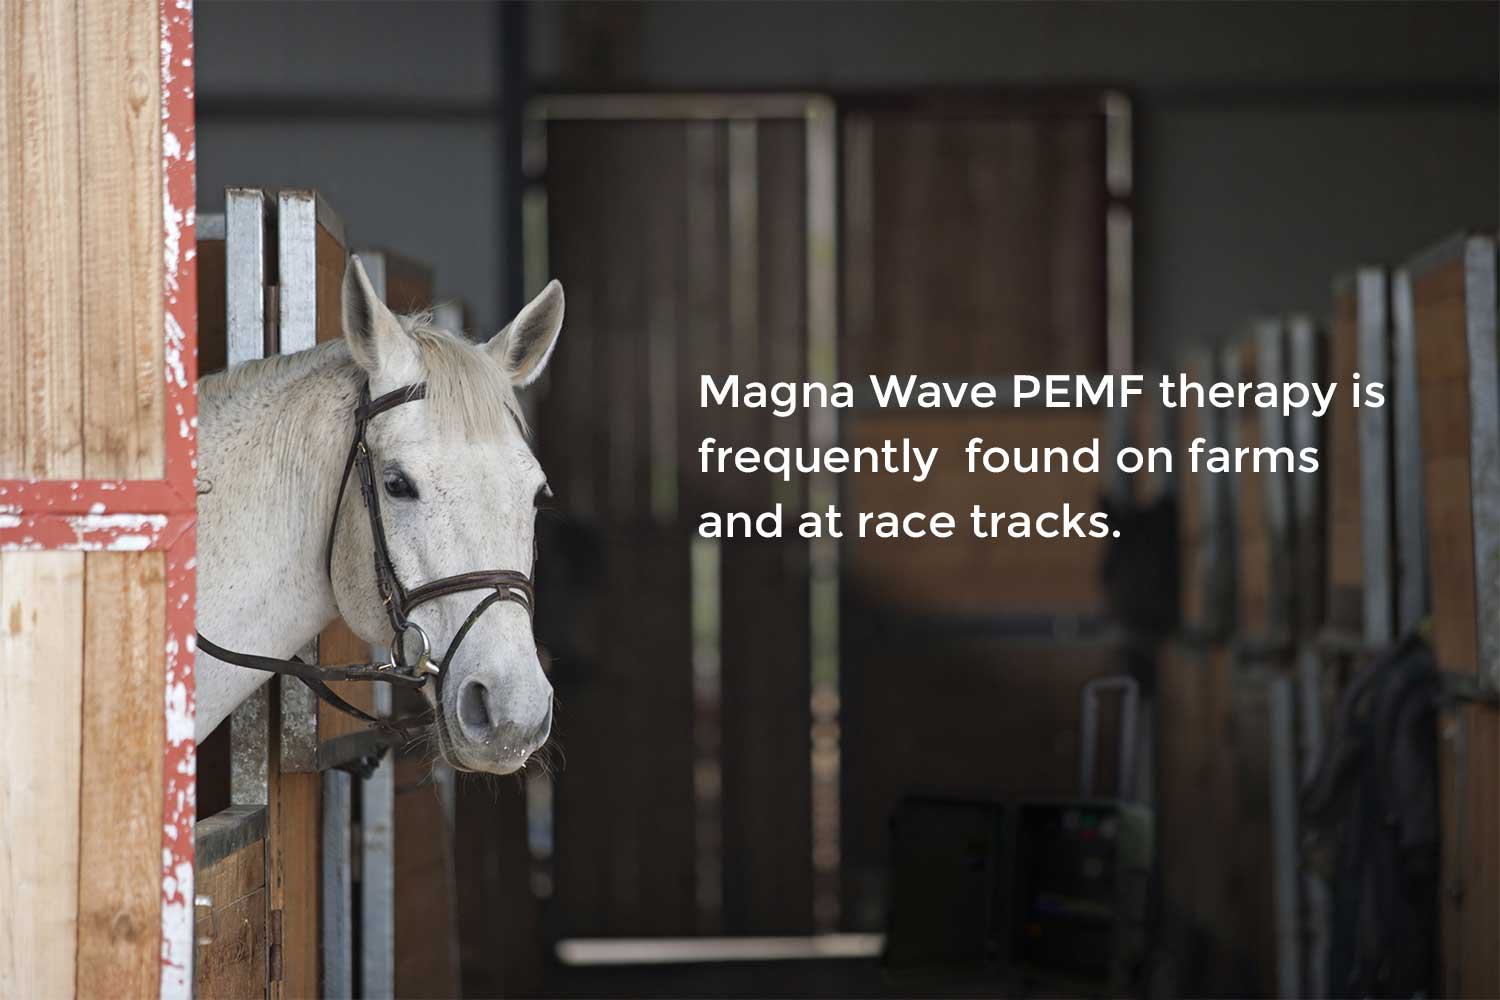 Magna Wave PEMF therapy is frequently found on farms and at race tracks